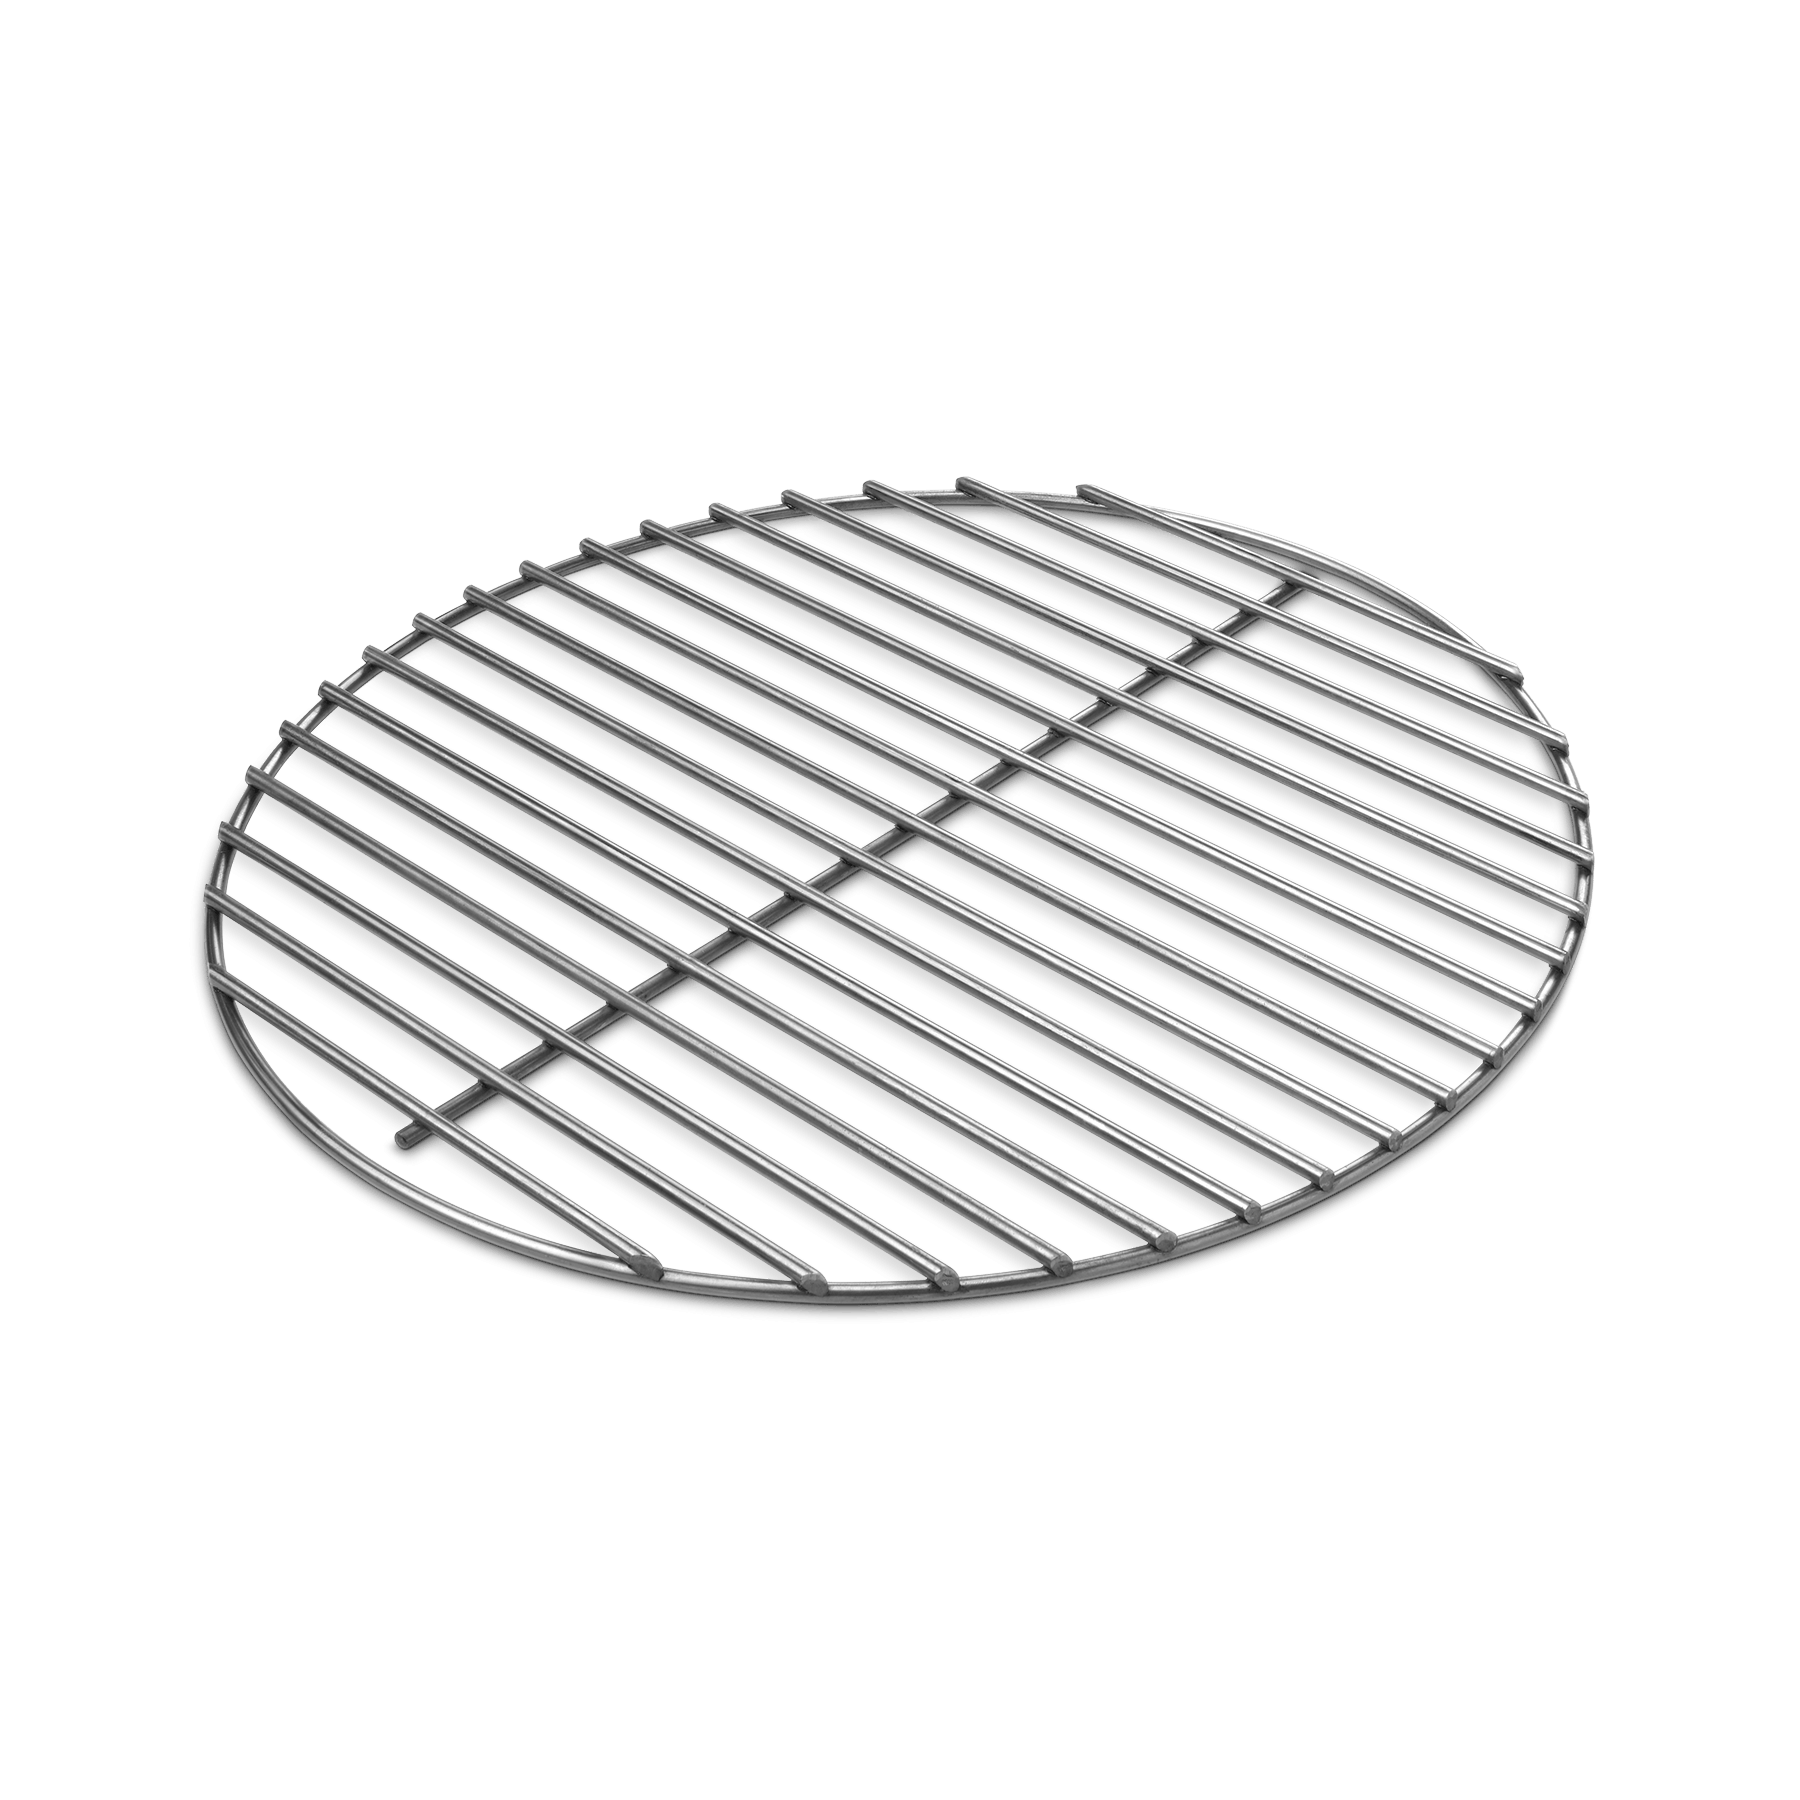 Transparent grill circle. Charcoal grate weber grills